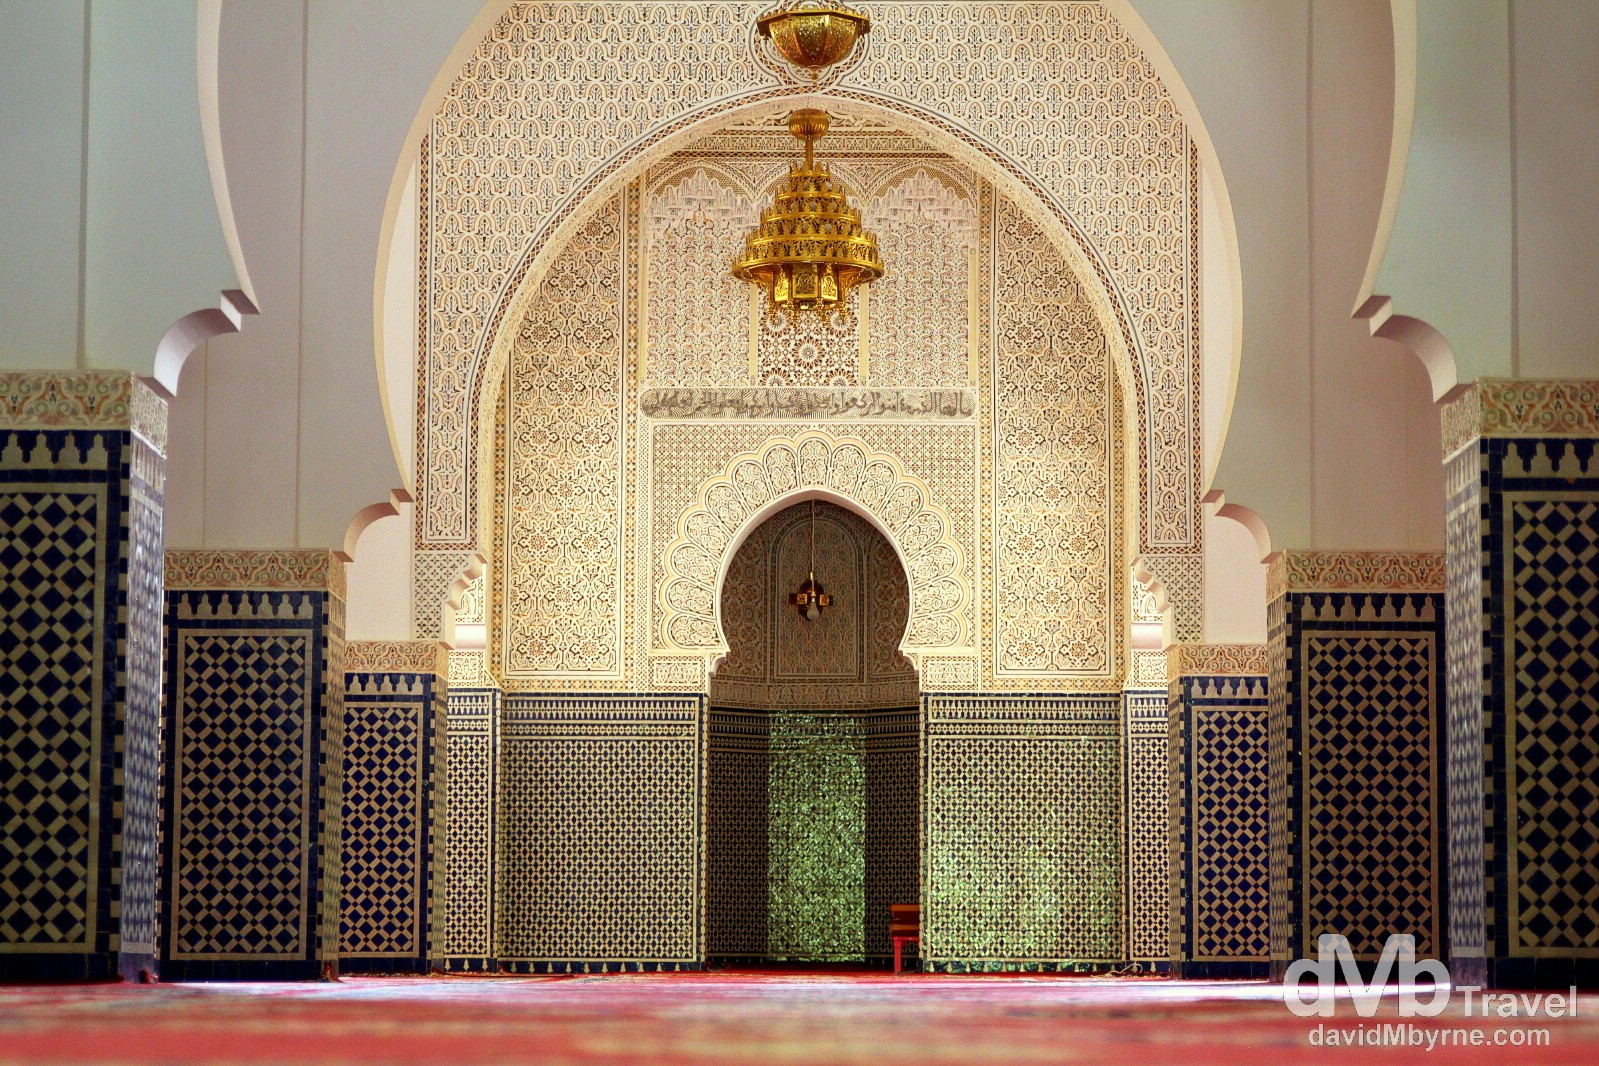 The interior of the Zaouai of Moulay Ali Shereef, the founder of the Moroccan Alaouite dynasty, outside the village of Rissani, Morocco. May 22nd, 2014.